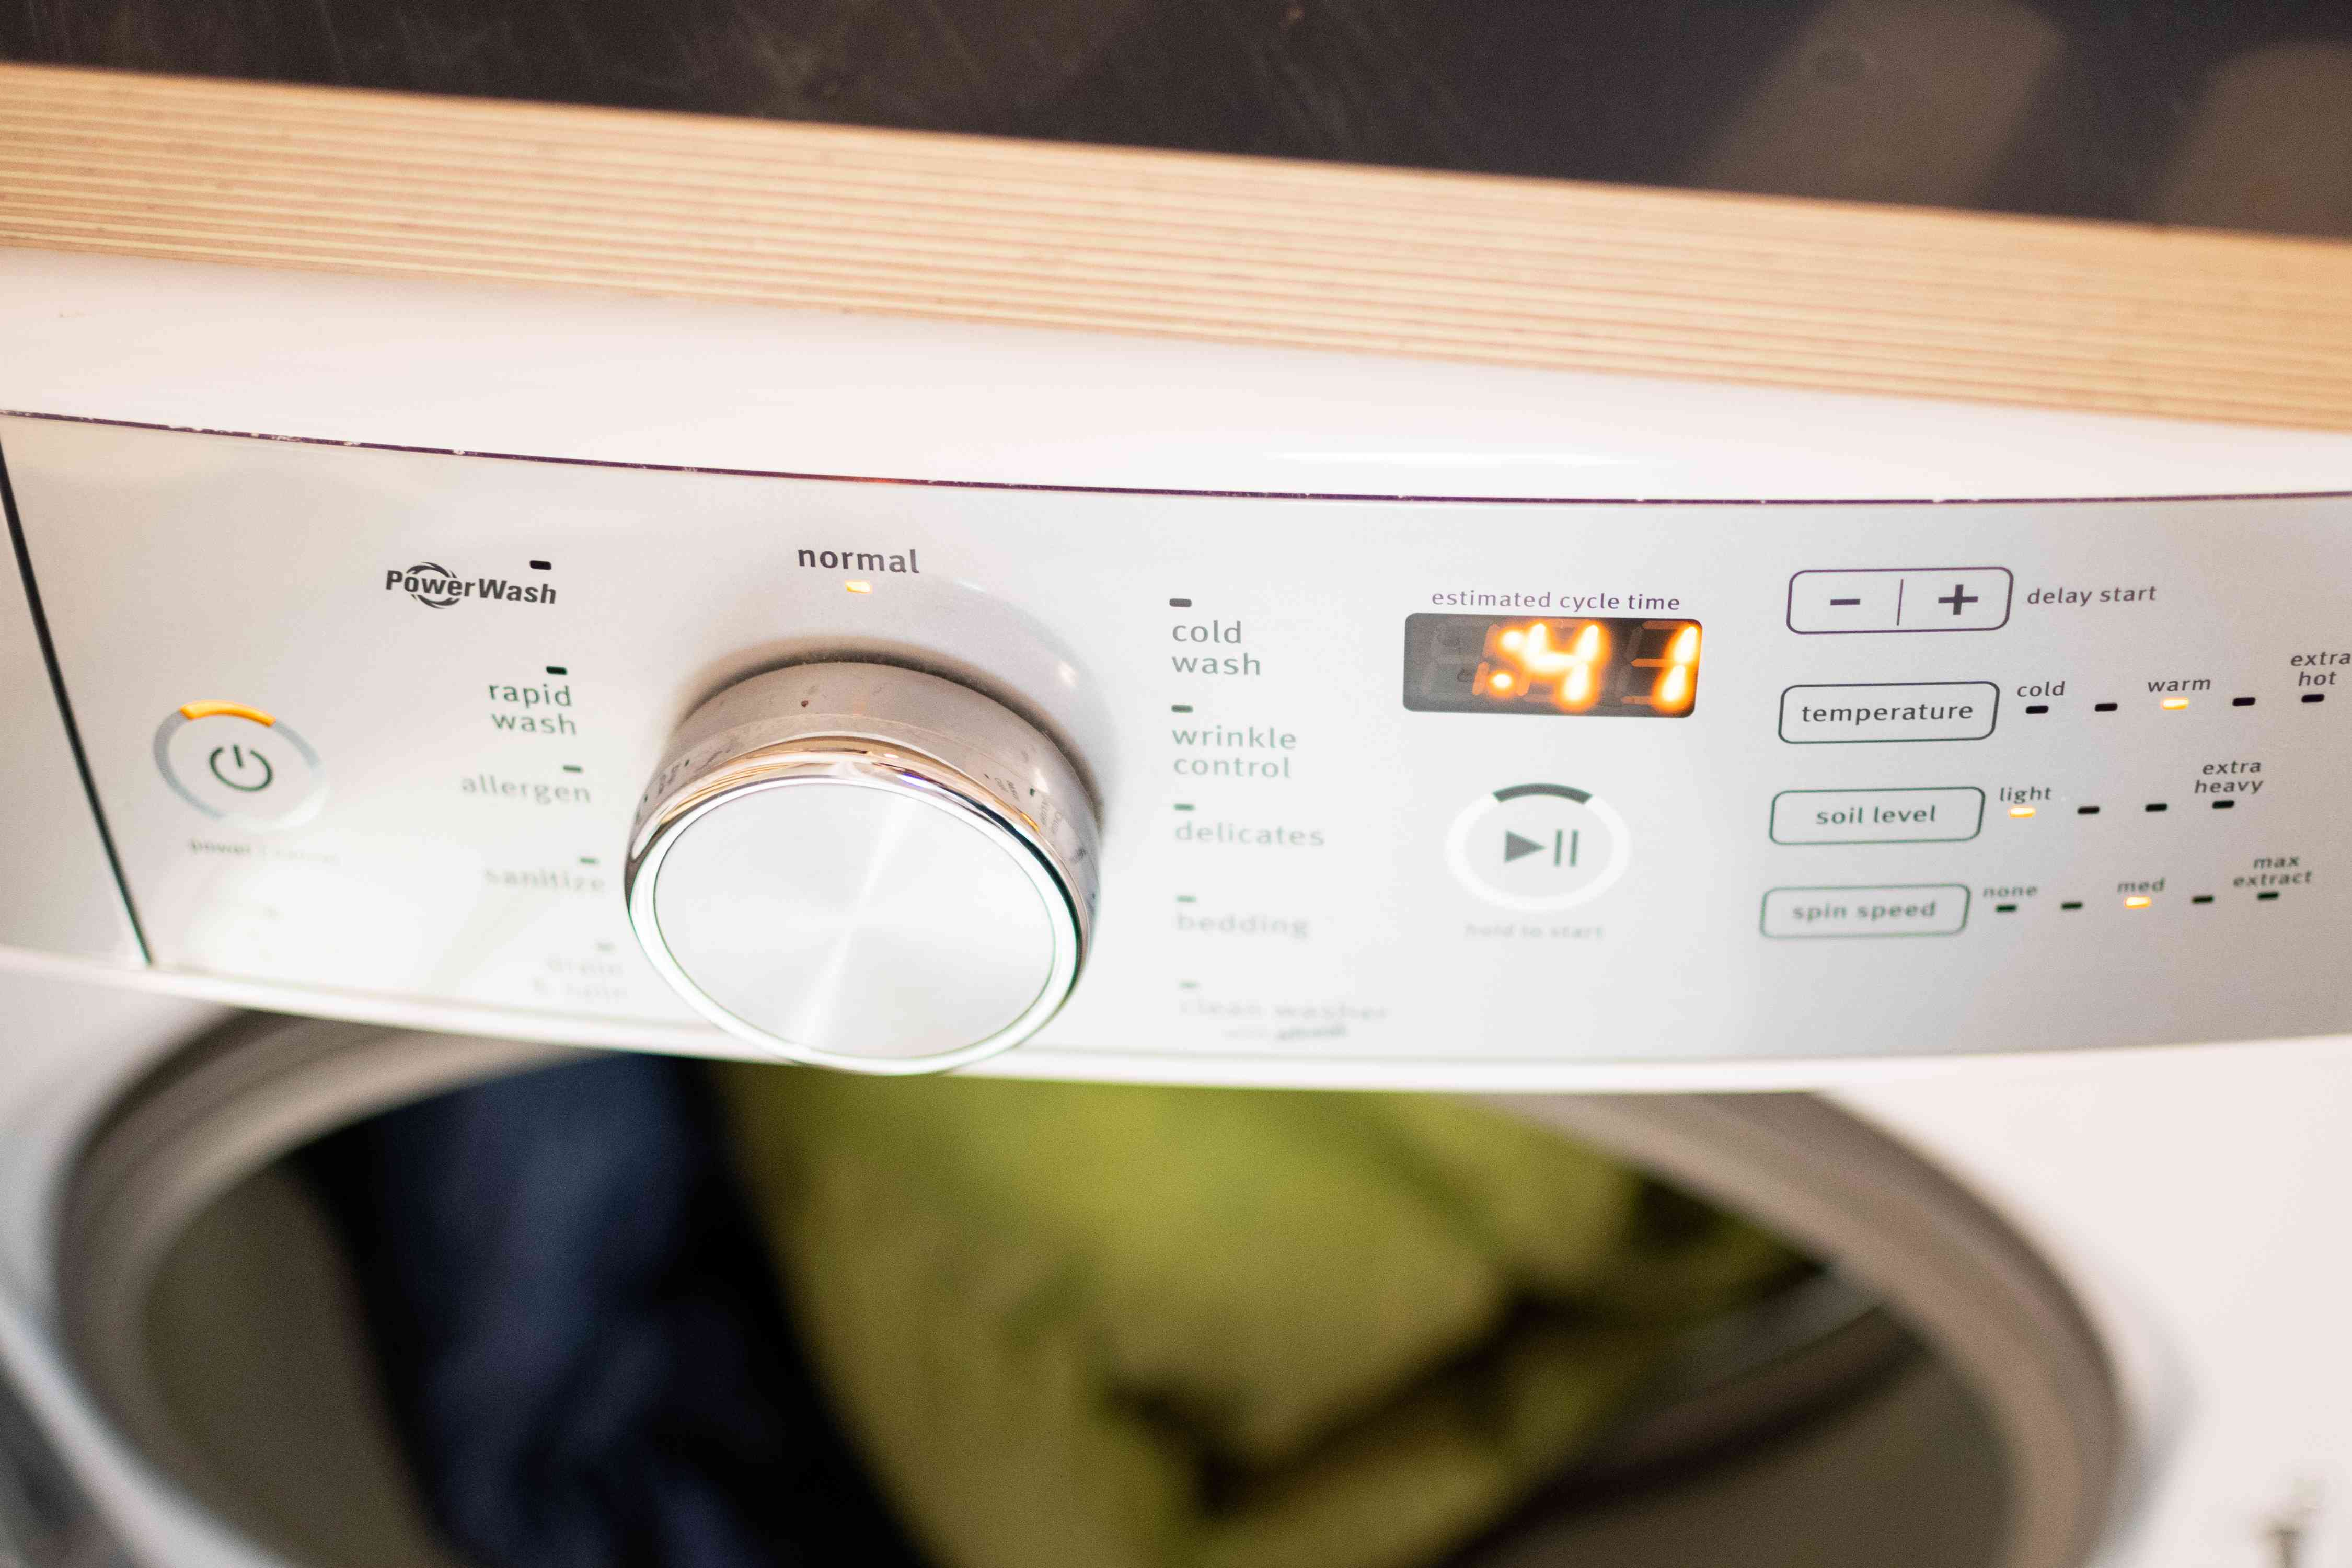 Warm water cycle set on washing machine to clean down coats